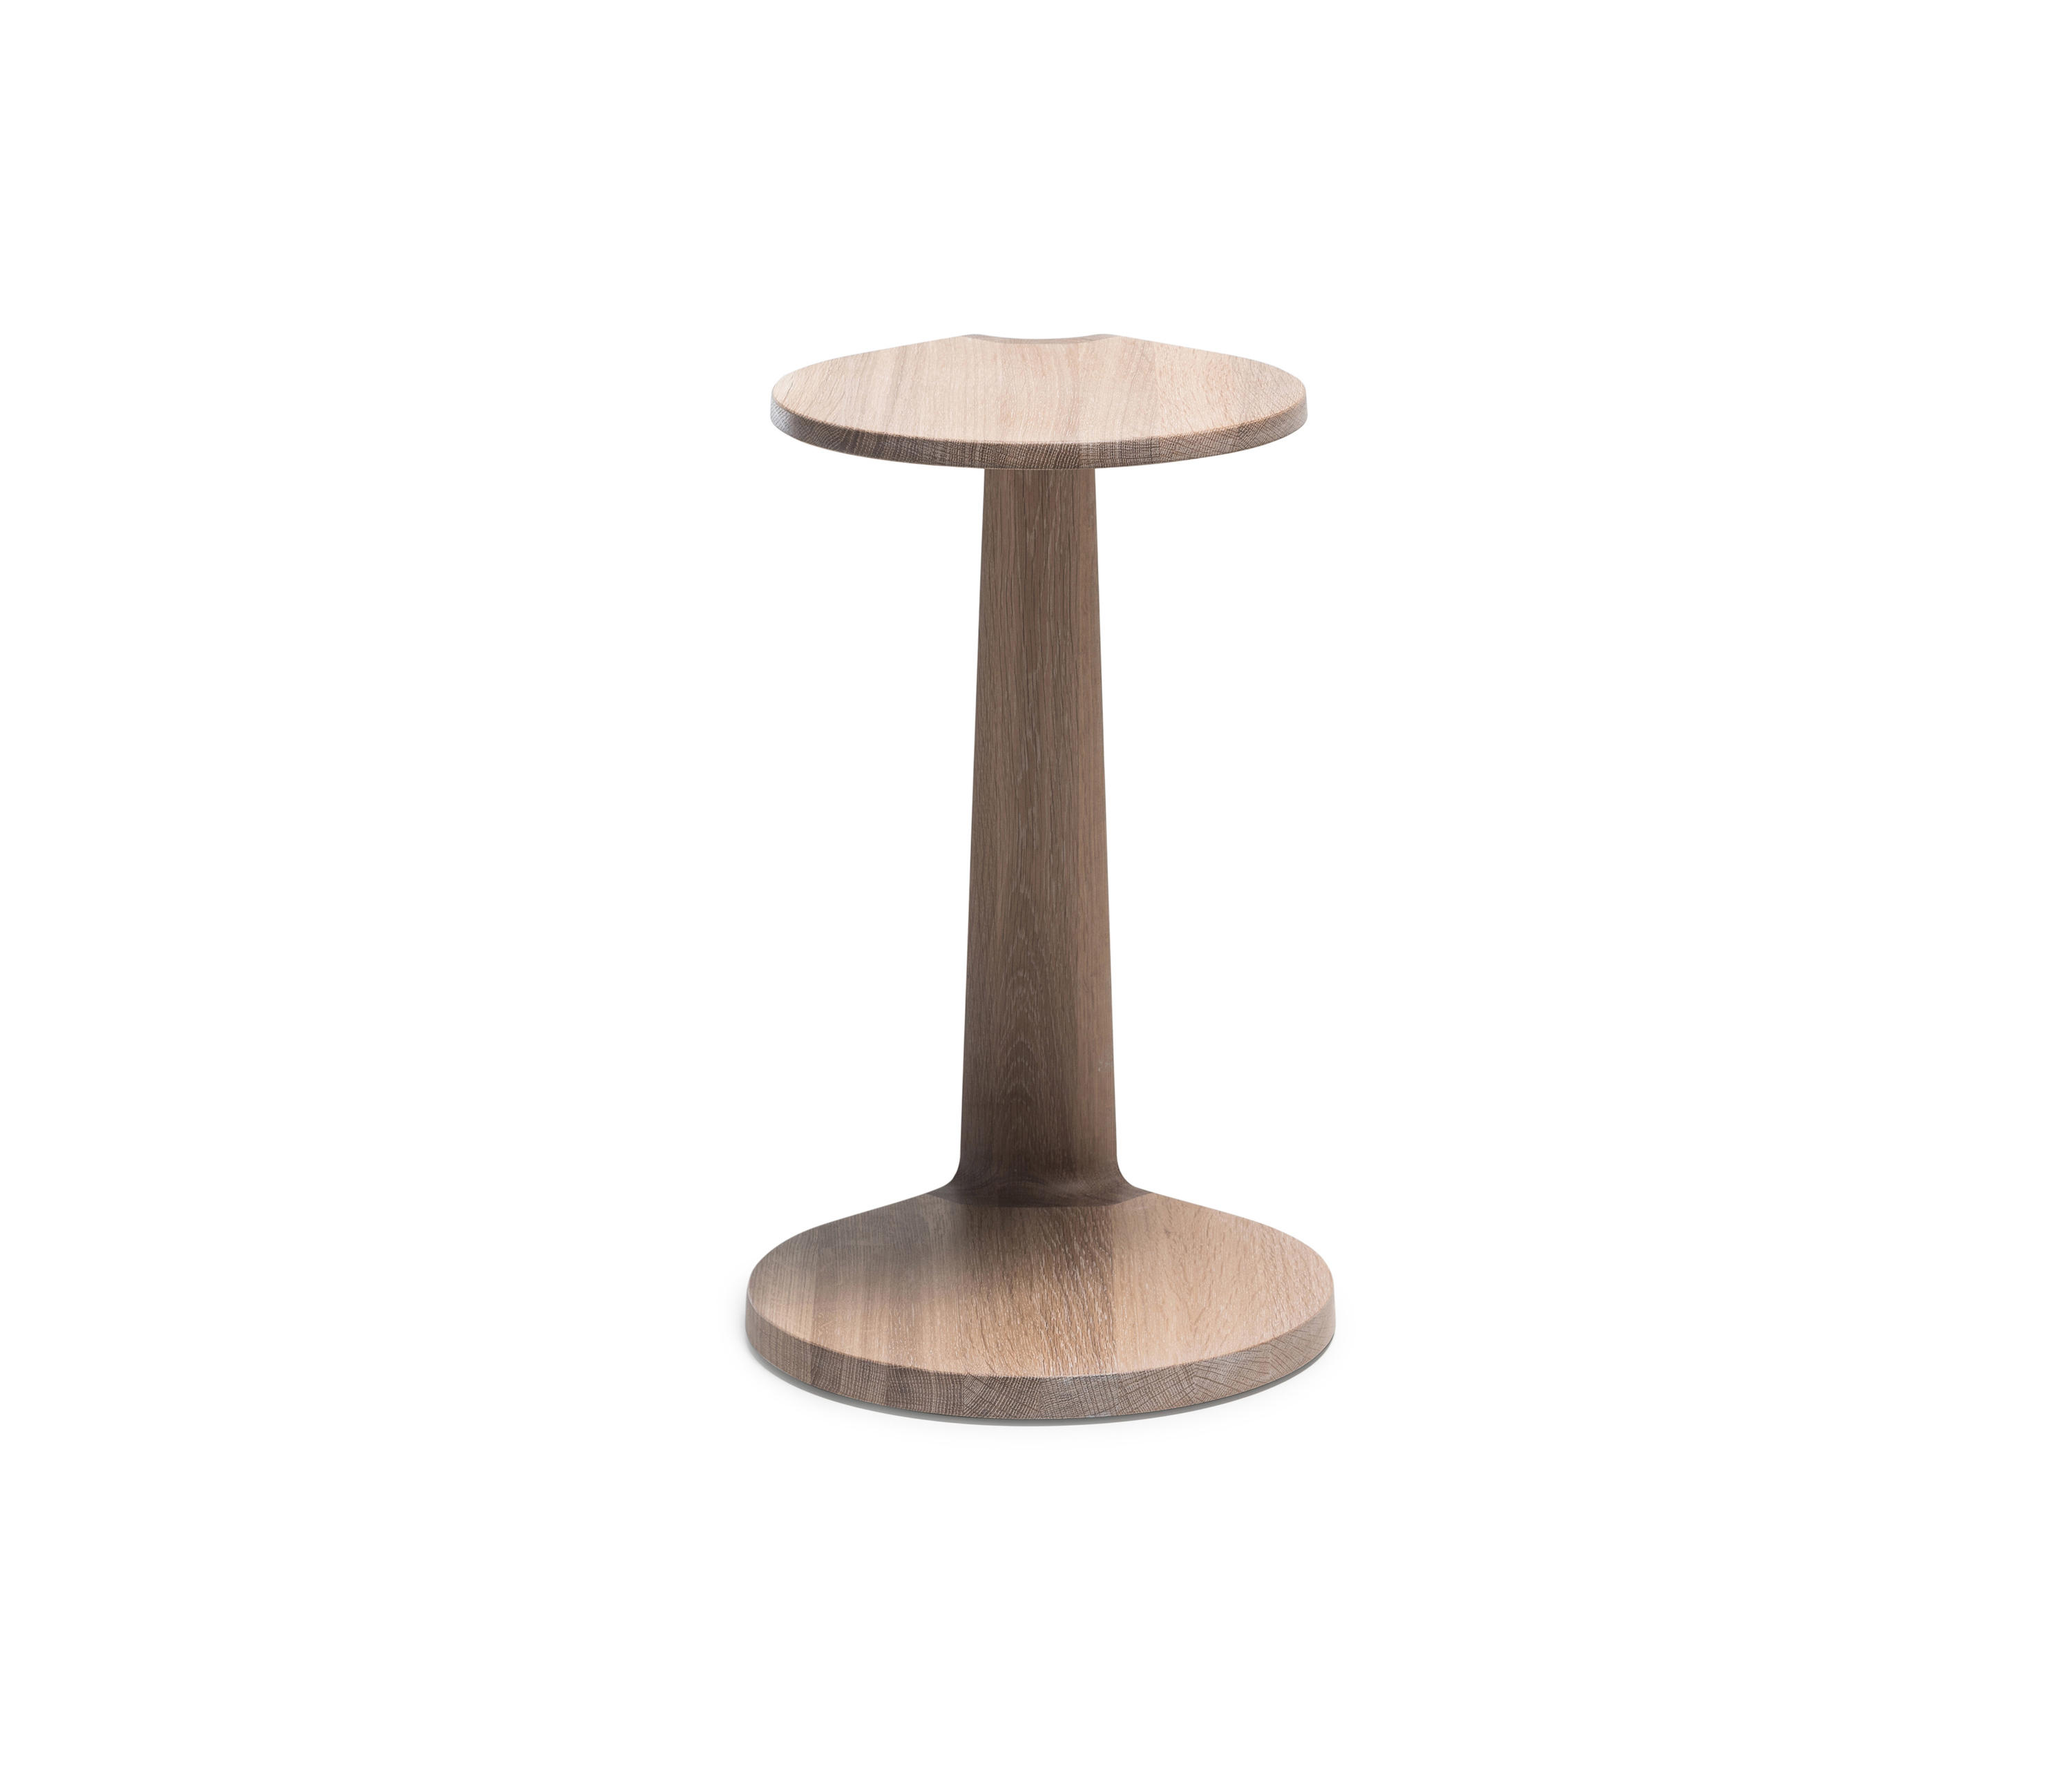 Primum oval side table side tables from mswood architonic primum oval side table by mswood side tables aloadofball Images